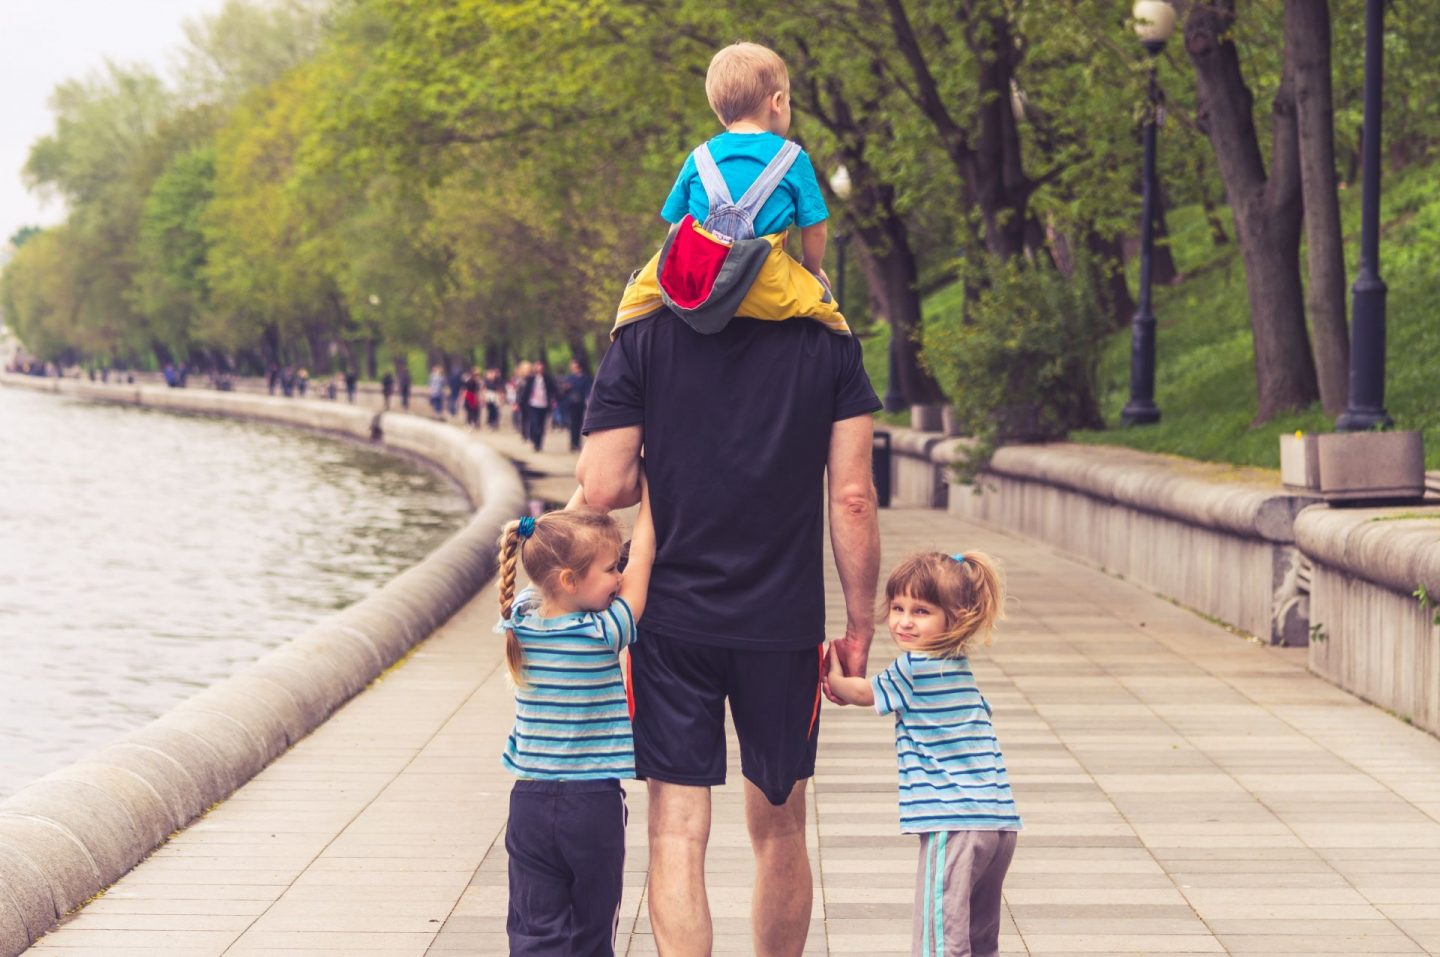 , 5 Fun Ways to Spend More Quality Time with Your Family This Summer